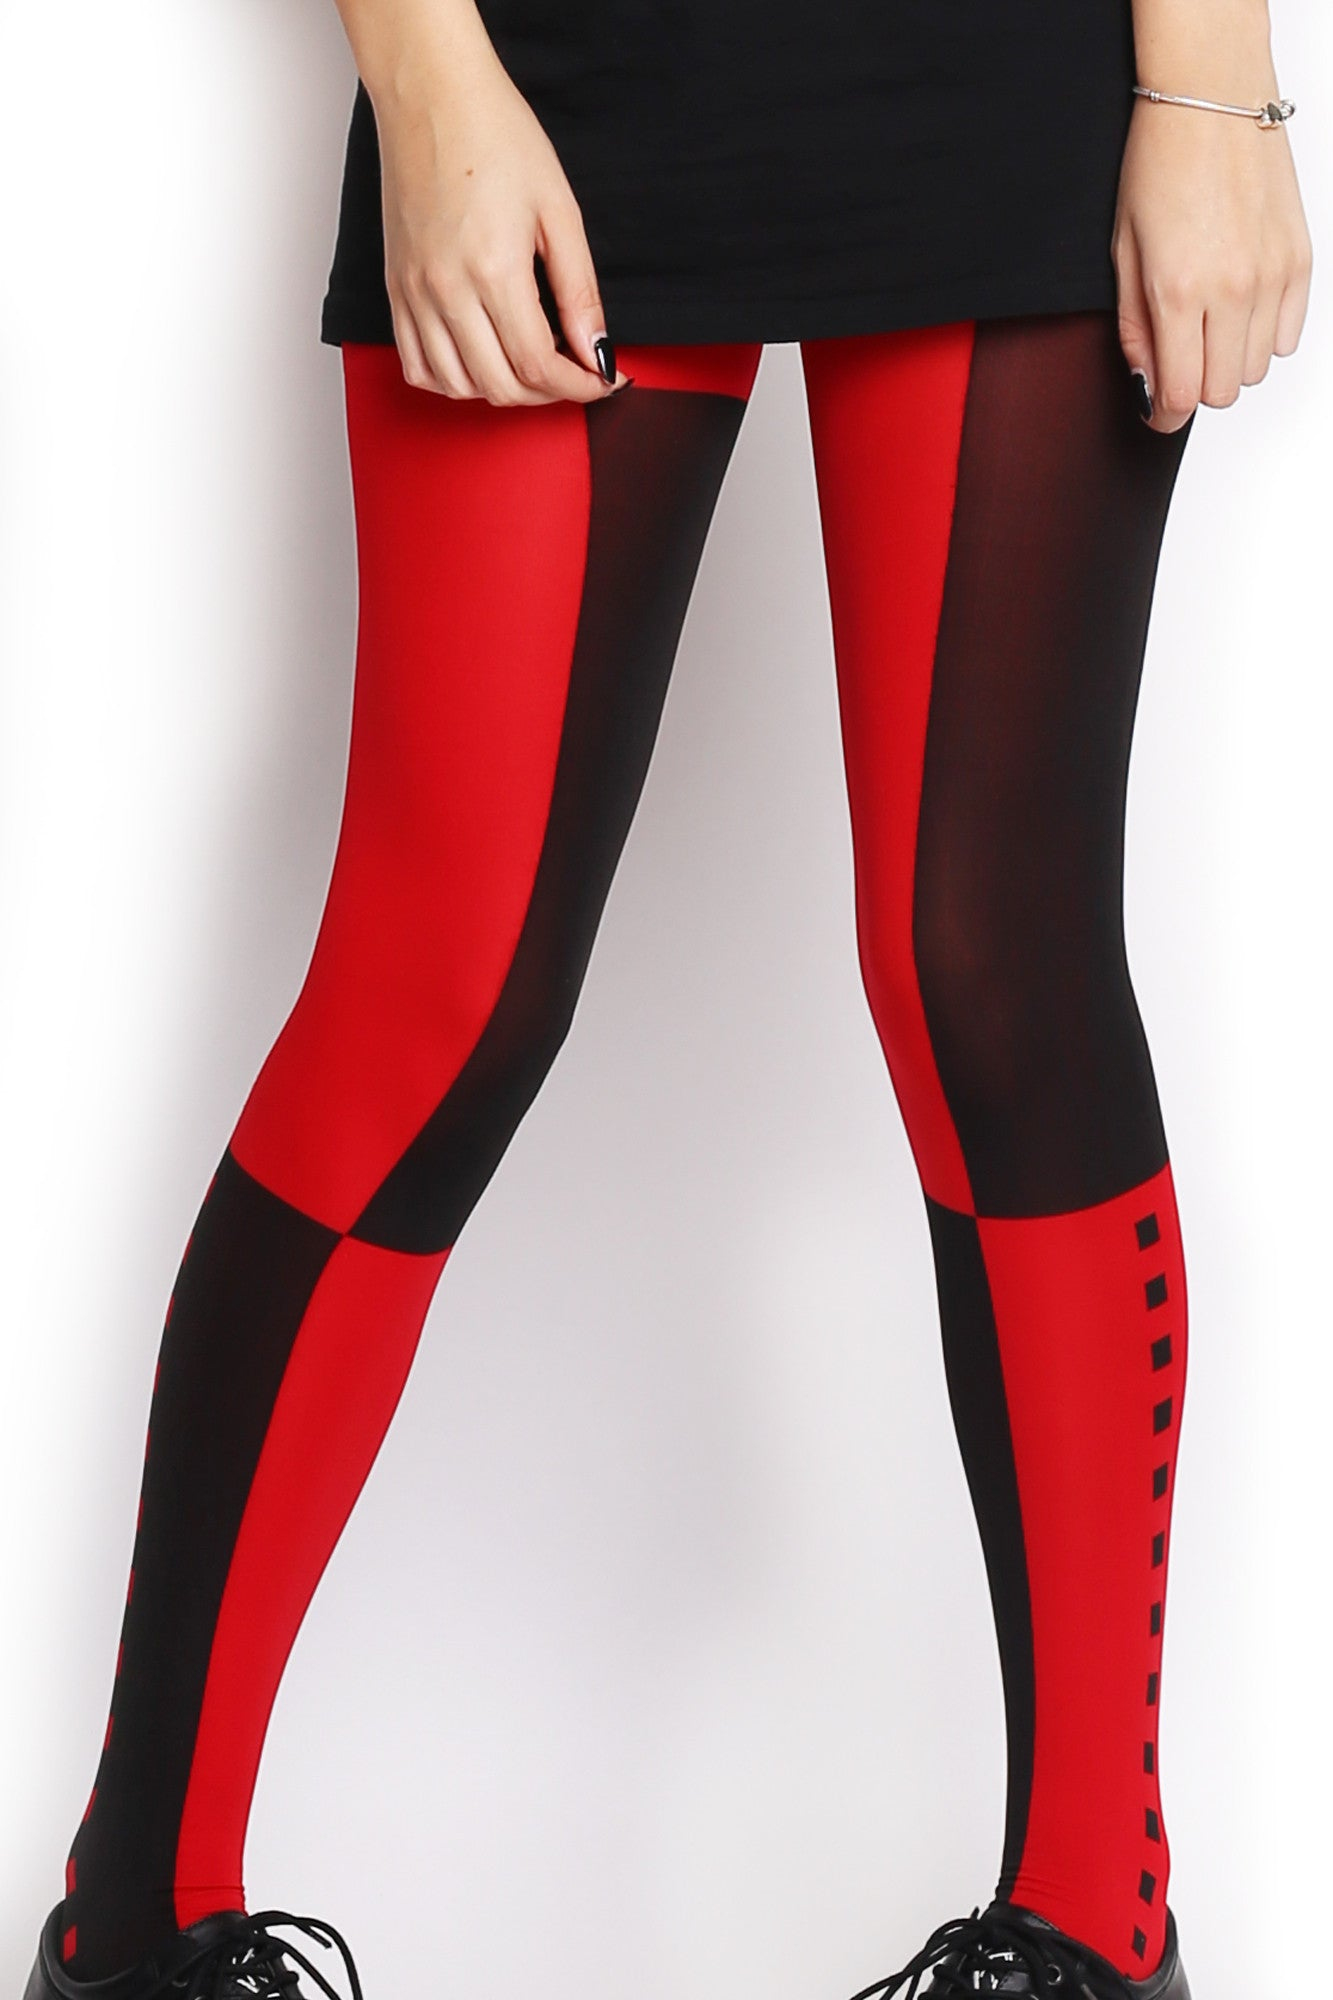 Jester Tights